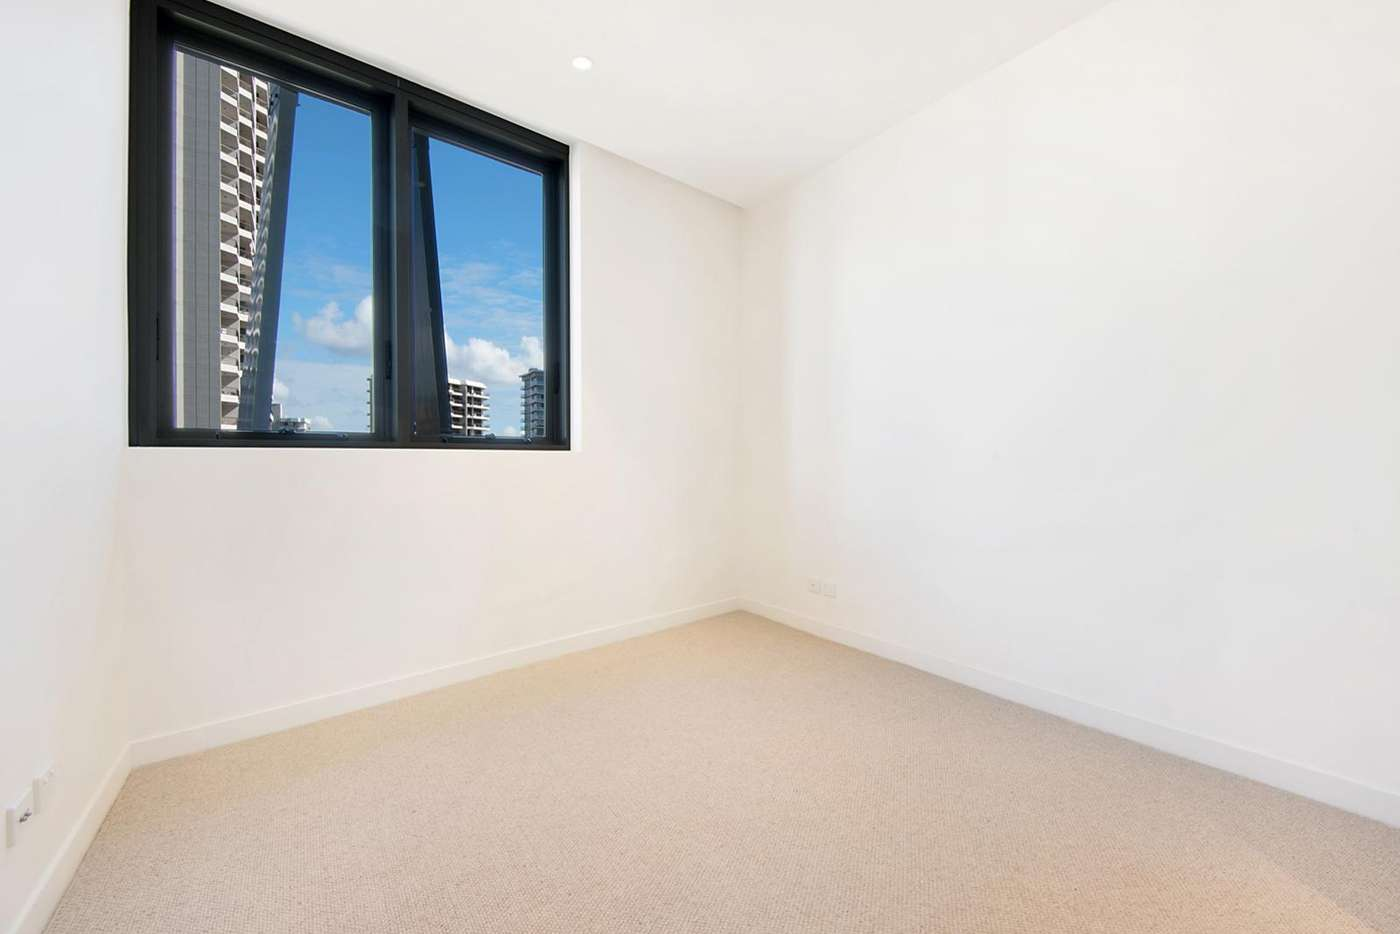 Sixth view of Homely apartment listing, 704/3 Northcliffe Terrace, Surfers Paradise QLD 4217